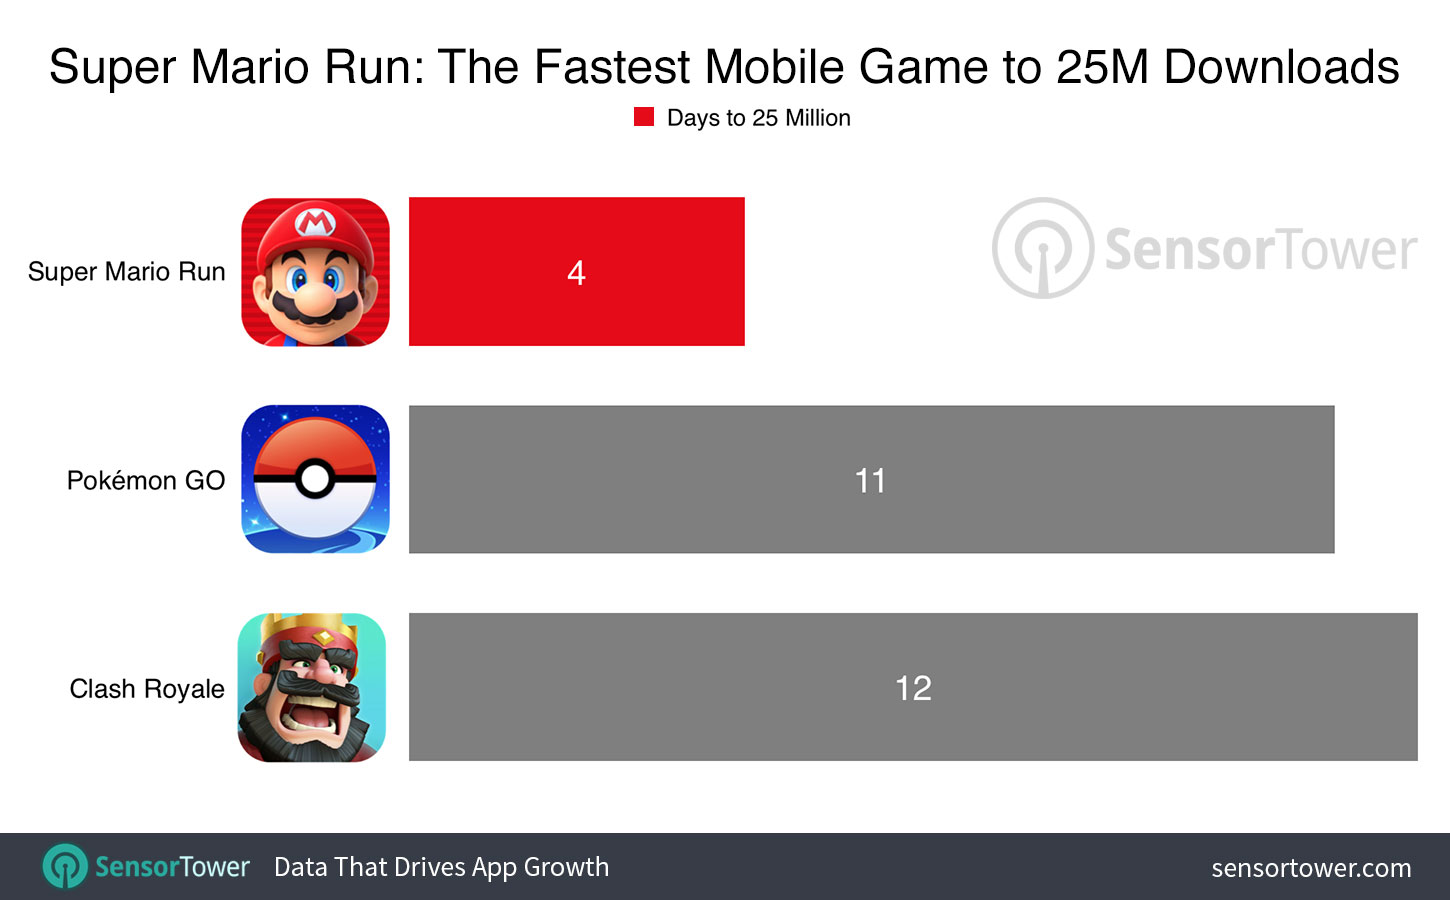 Super Mario Run Is the Fastest Mobile Game to 25 Million